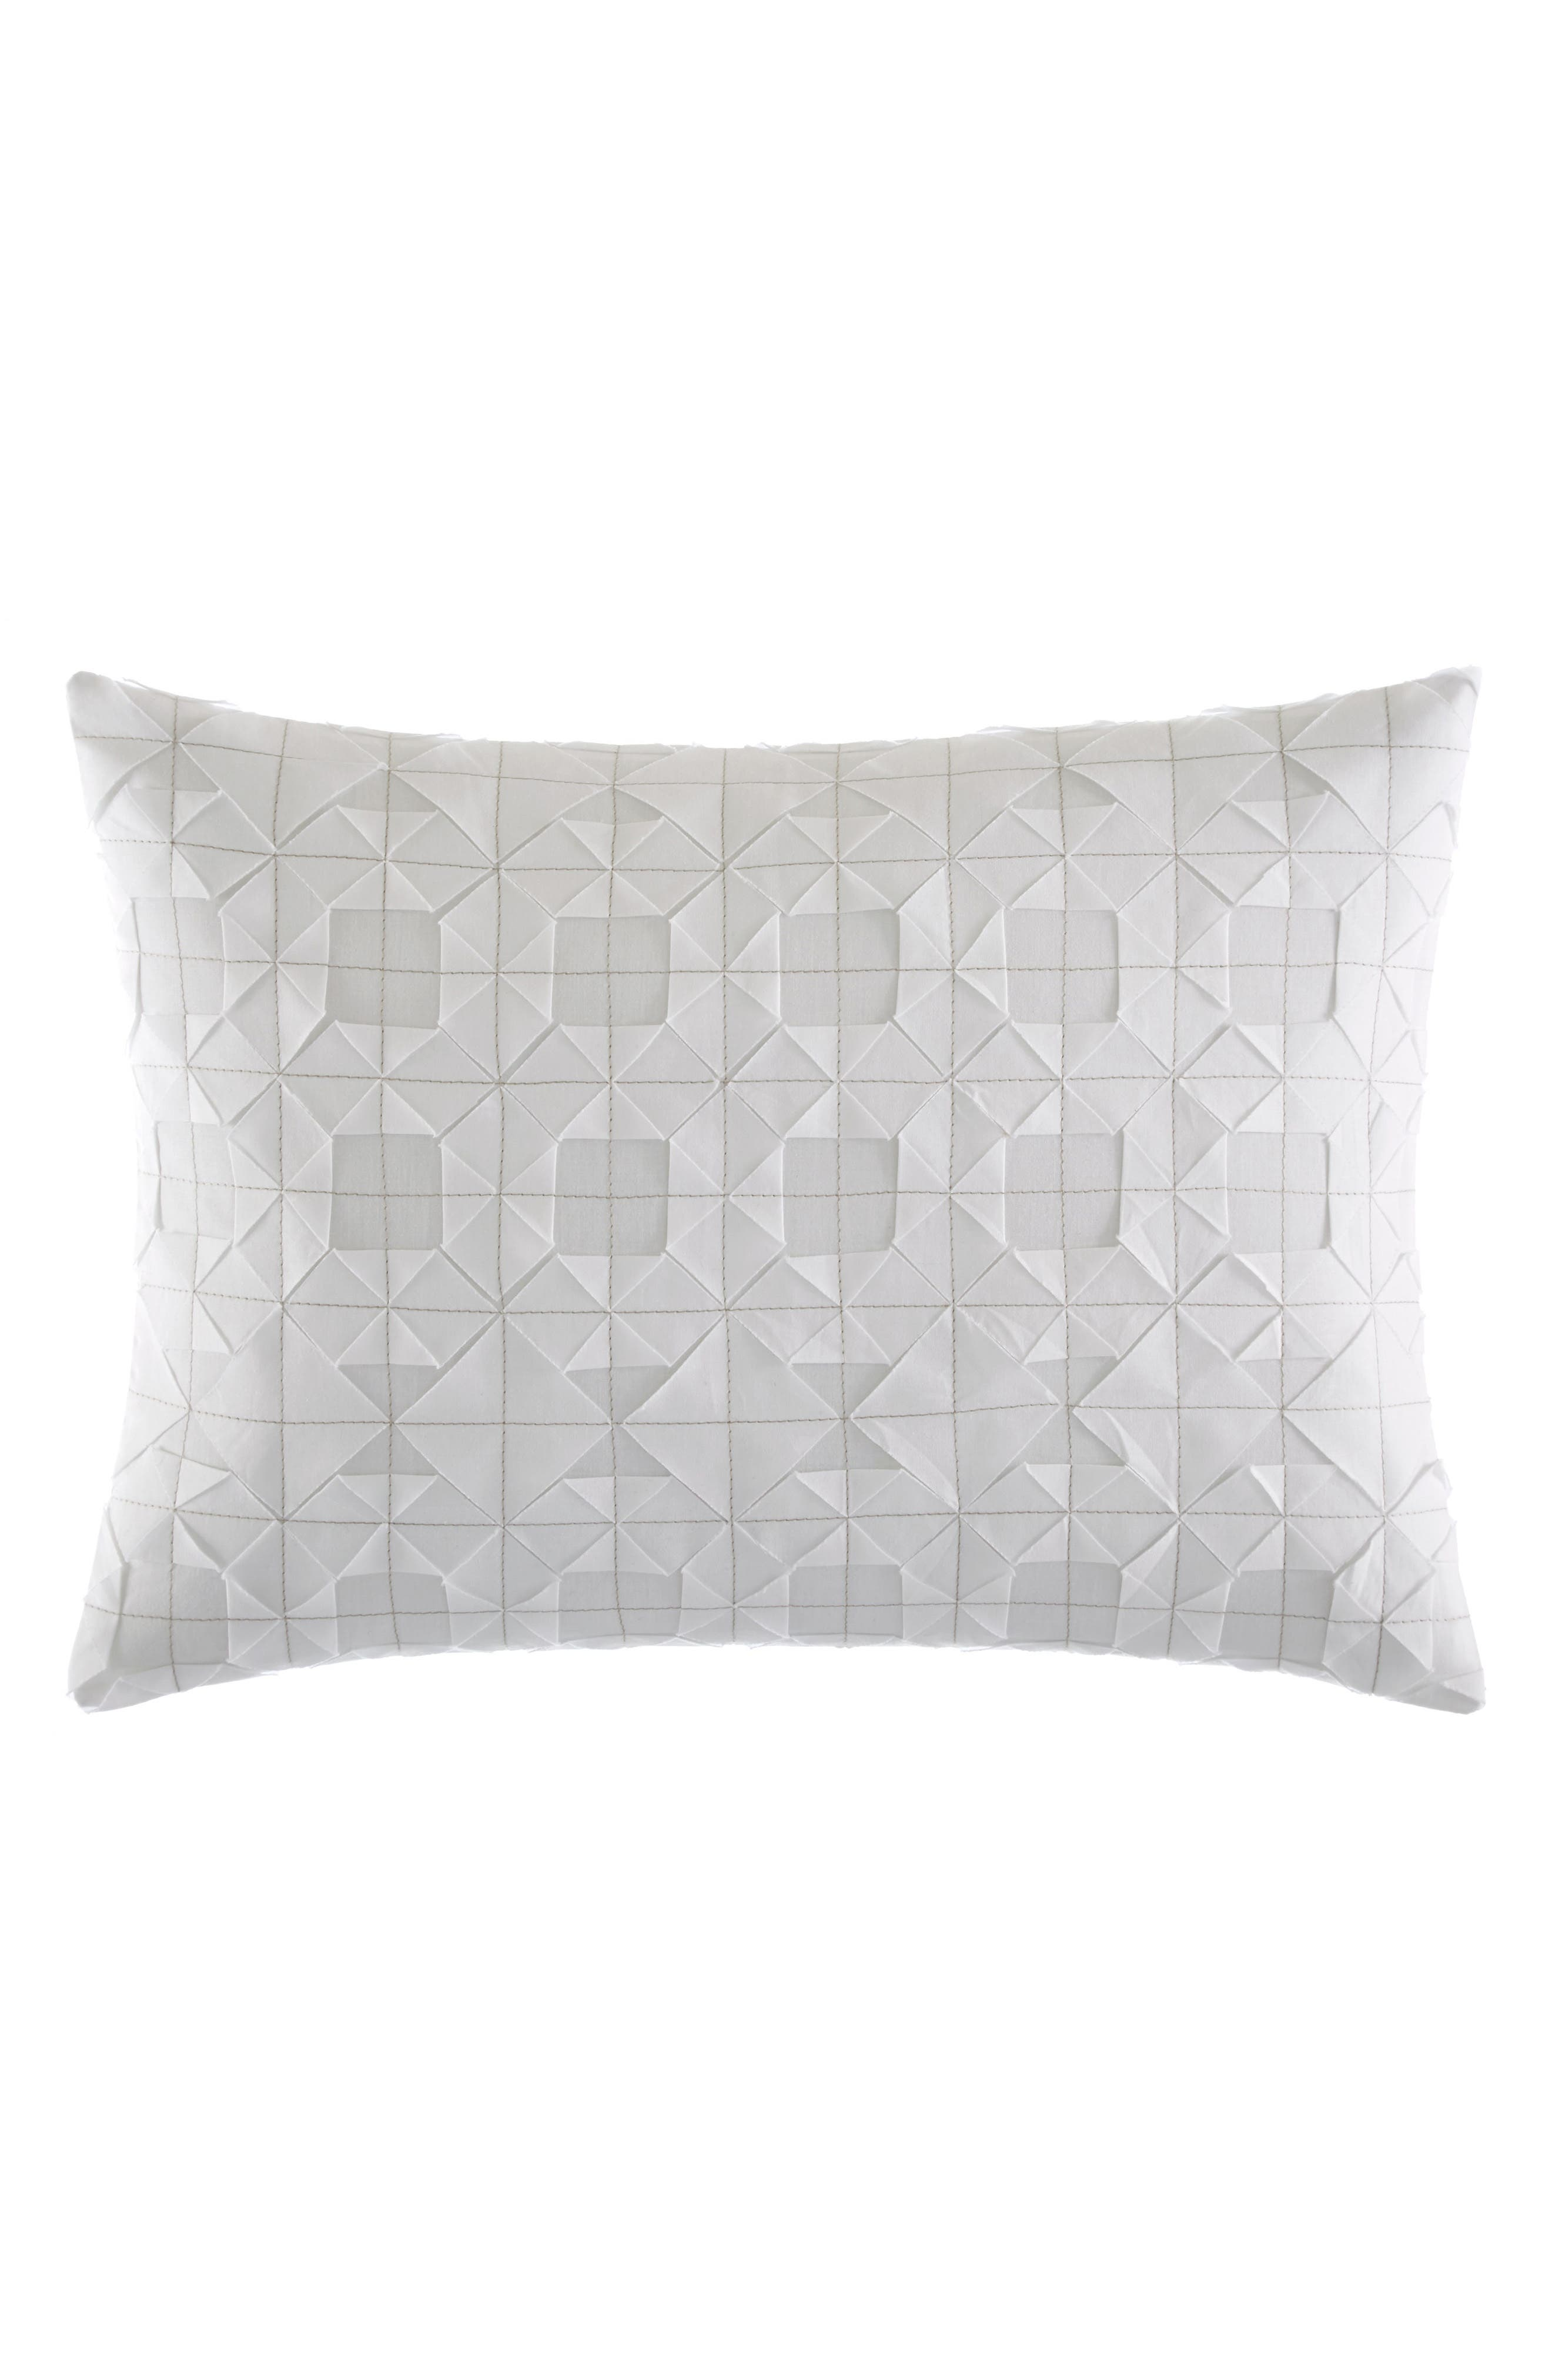 Tuille Origami Stitched Accent Pillow,                             Main thumbnail 1, color,                             WHITE